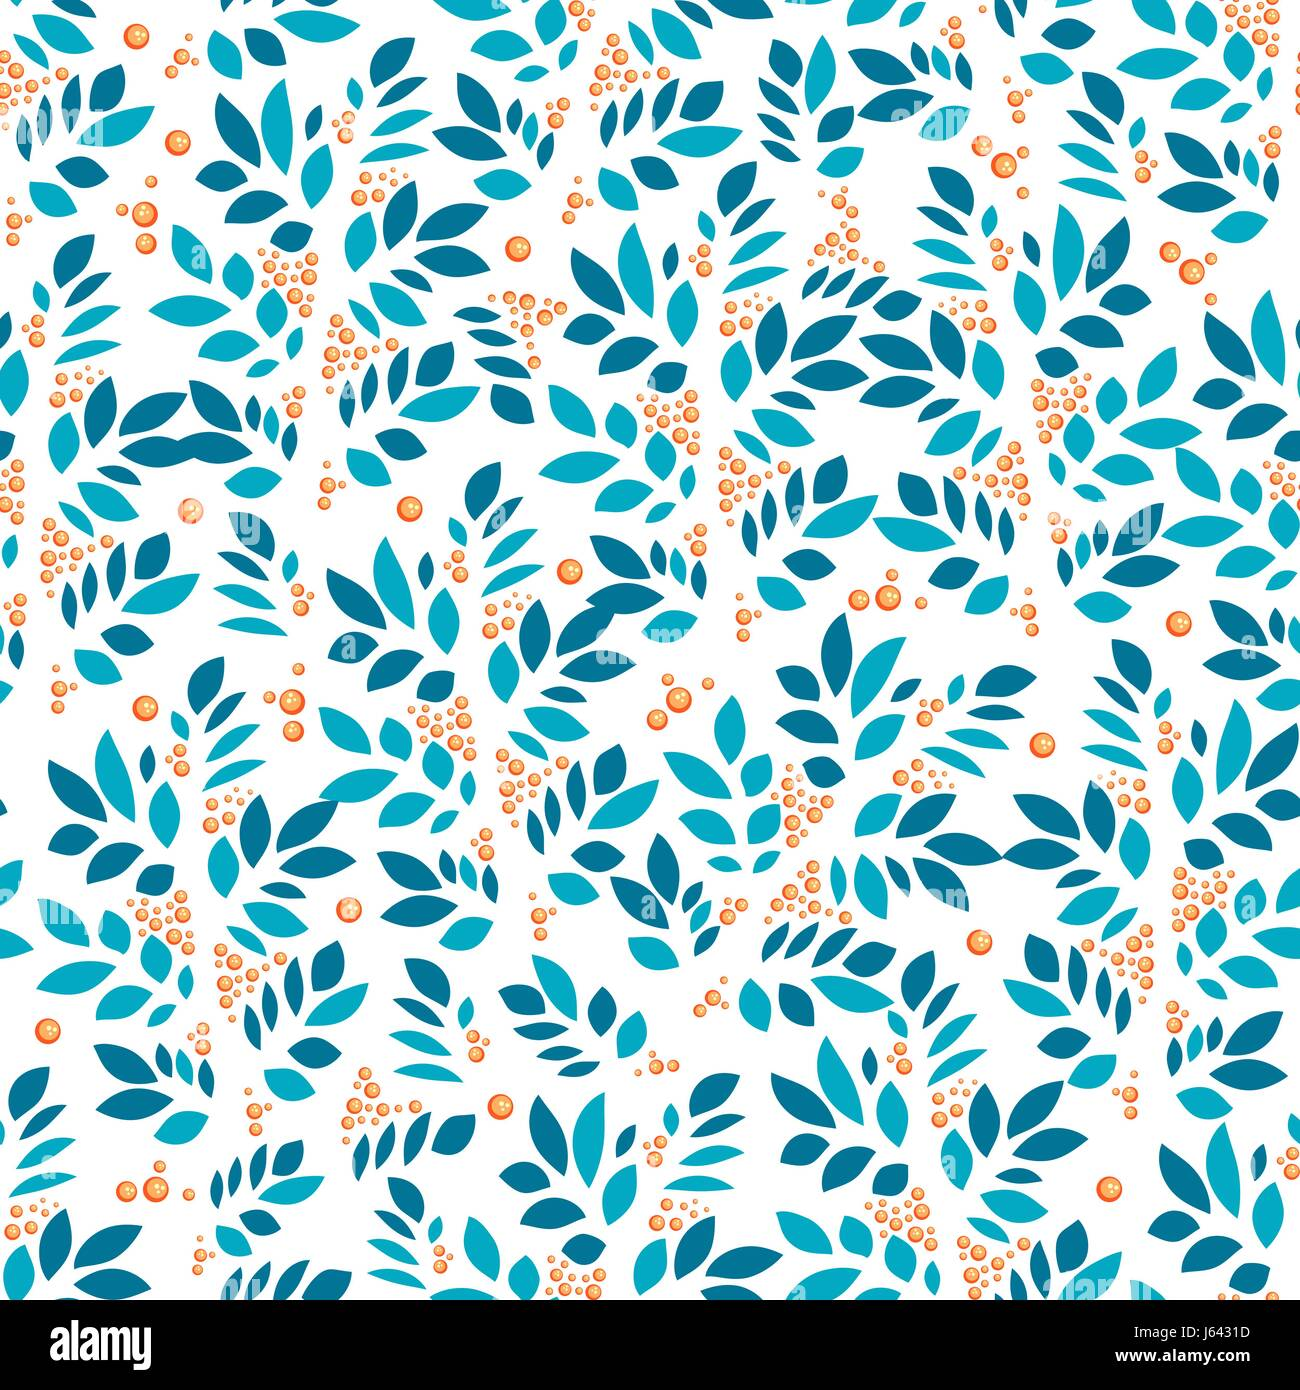 Leaf Patterns Drawing High Resolution Stock Photography And Images Alamy